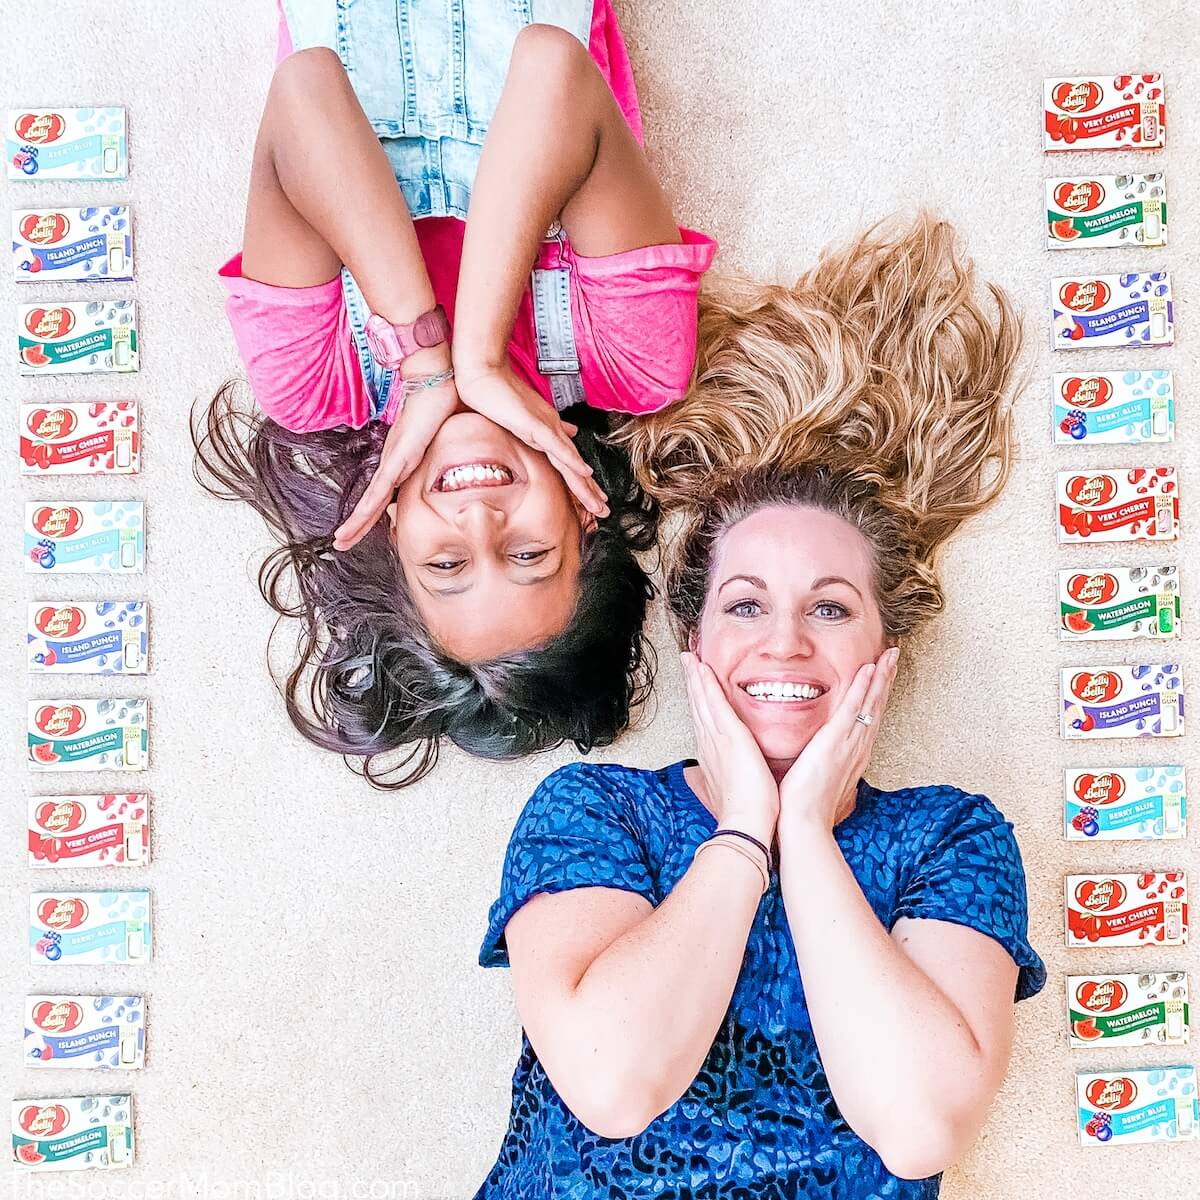 little girl and mom lying on floor with gum around them